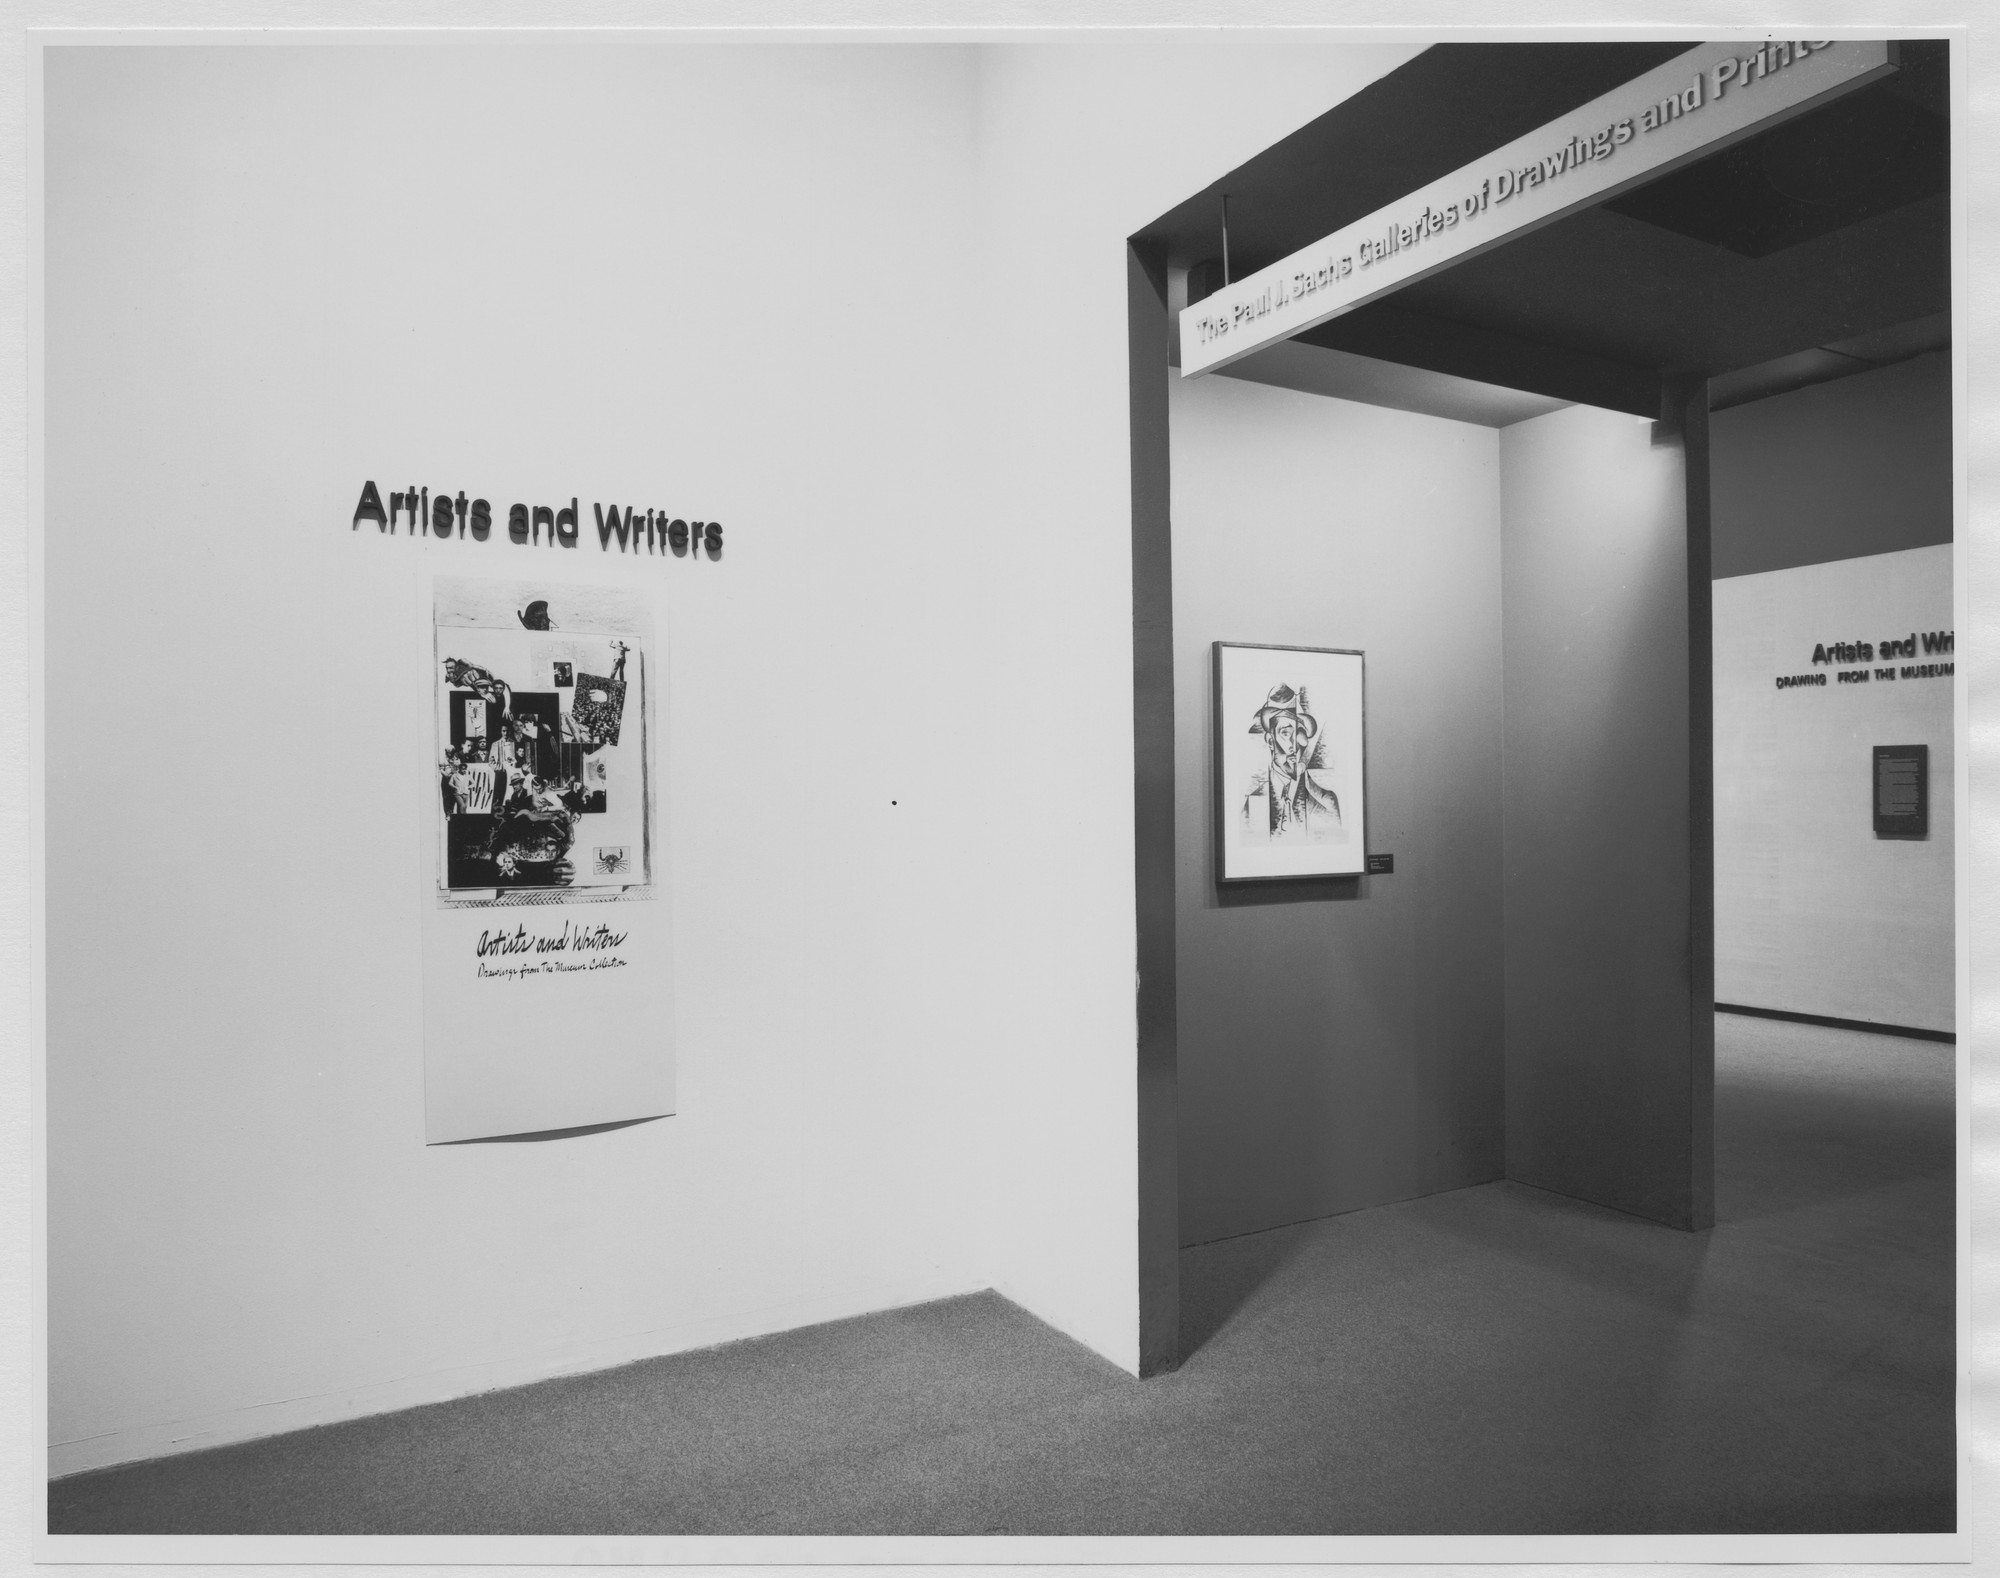 "Installation view of the exhibition, ""Artists and Writers"" July 10, 1978–October 3, 1978. Photographic Archive. The Museum of Modern Art Archives, New York. IN1219.1. Photograph by Mali Olatunji."